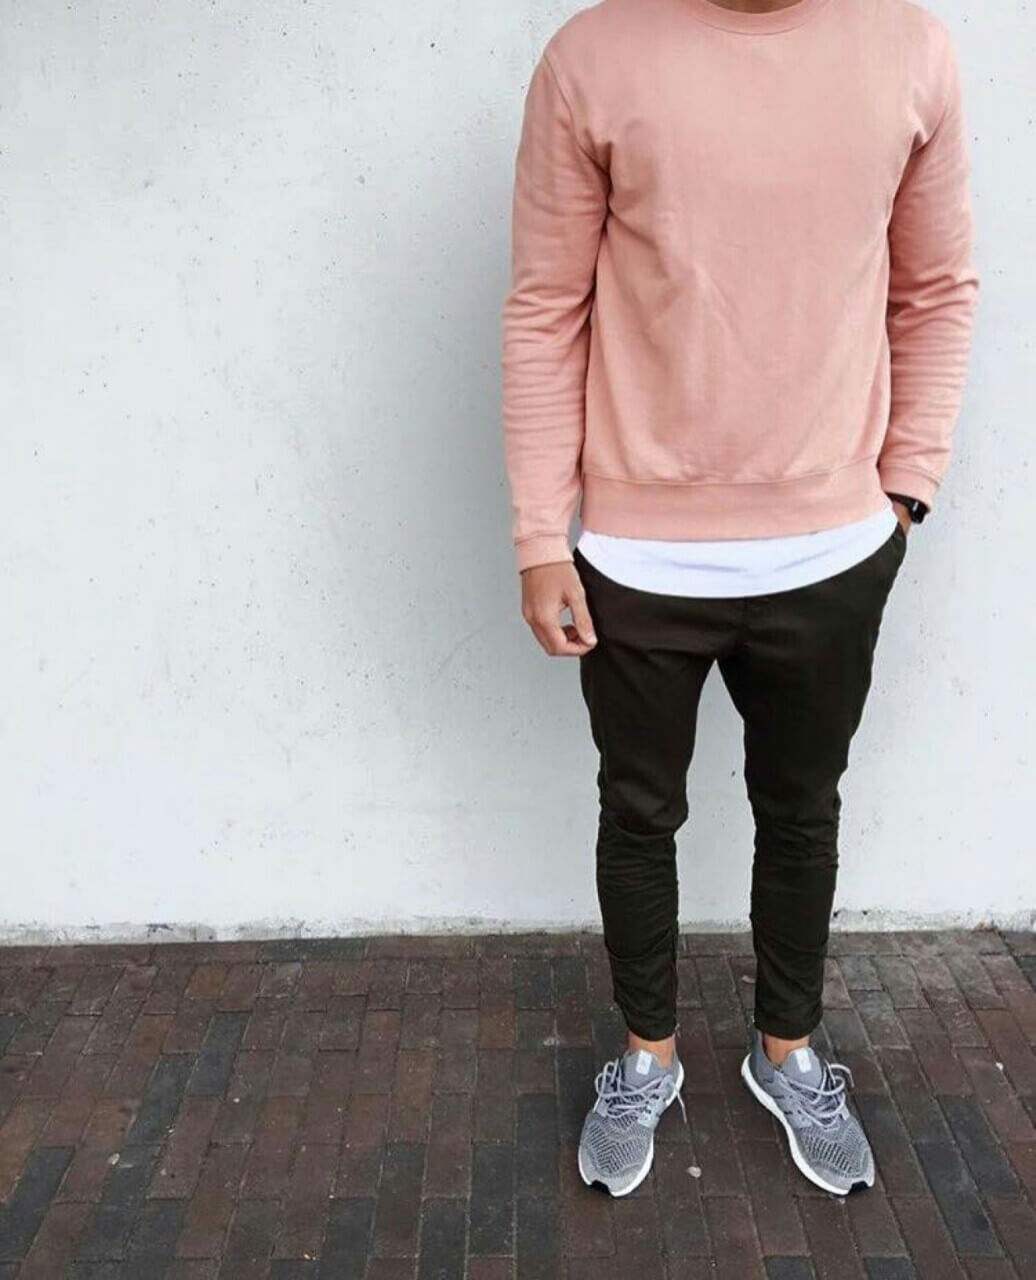 397517b3b899 31 Men s Style Outfits Every Guy Should Look At For Inspiration ...